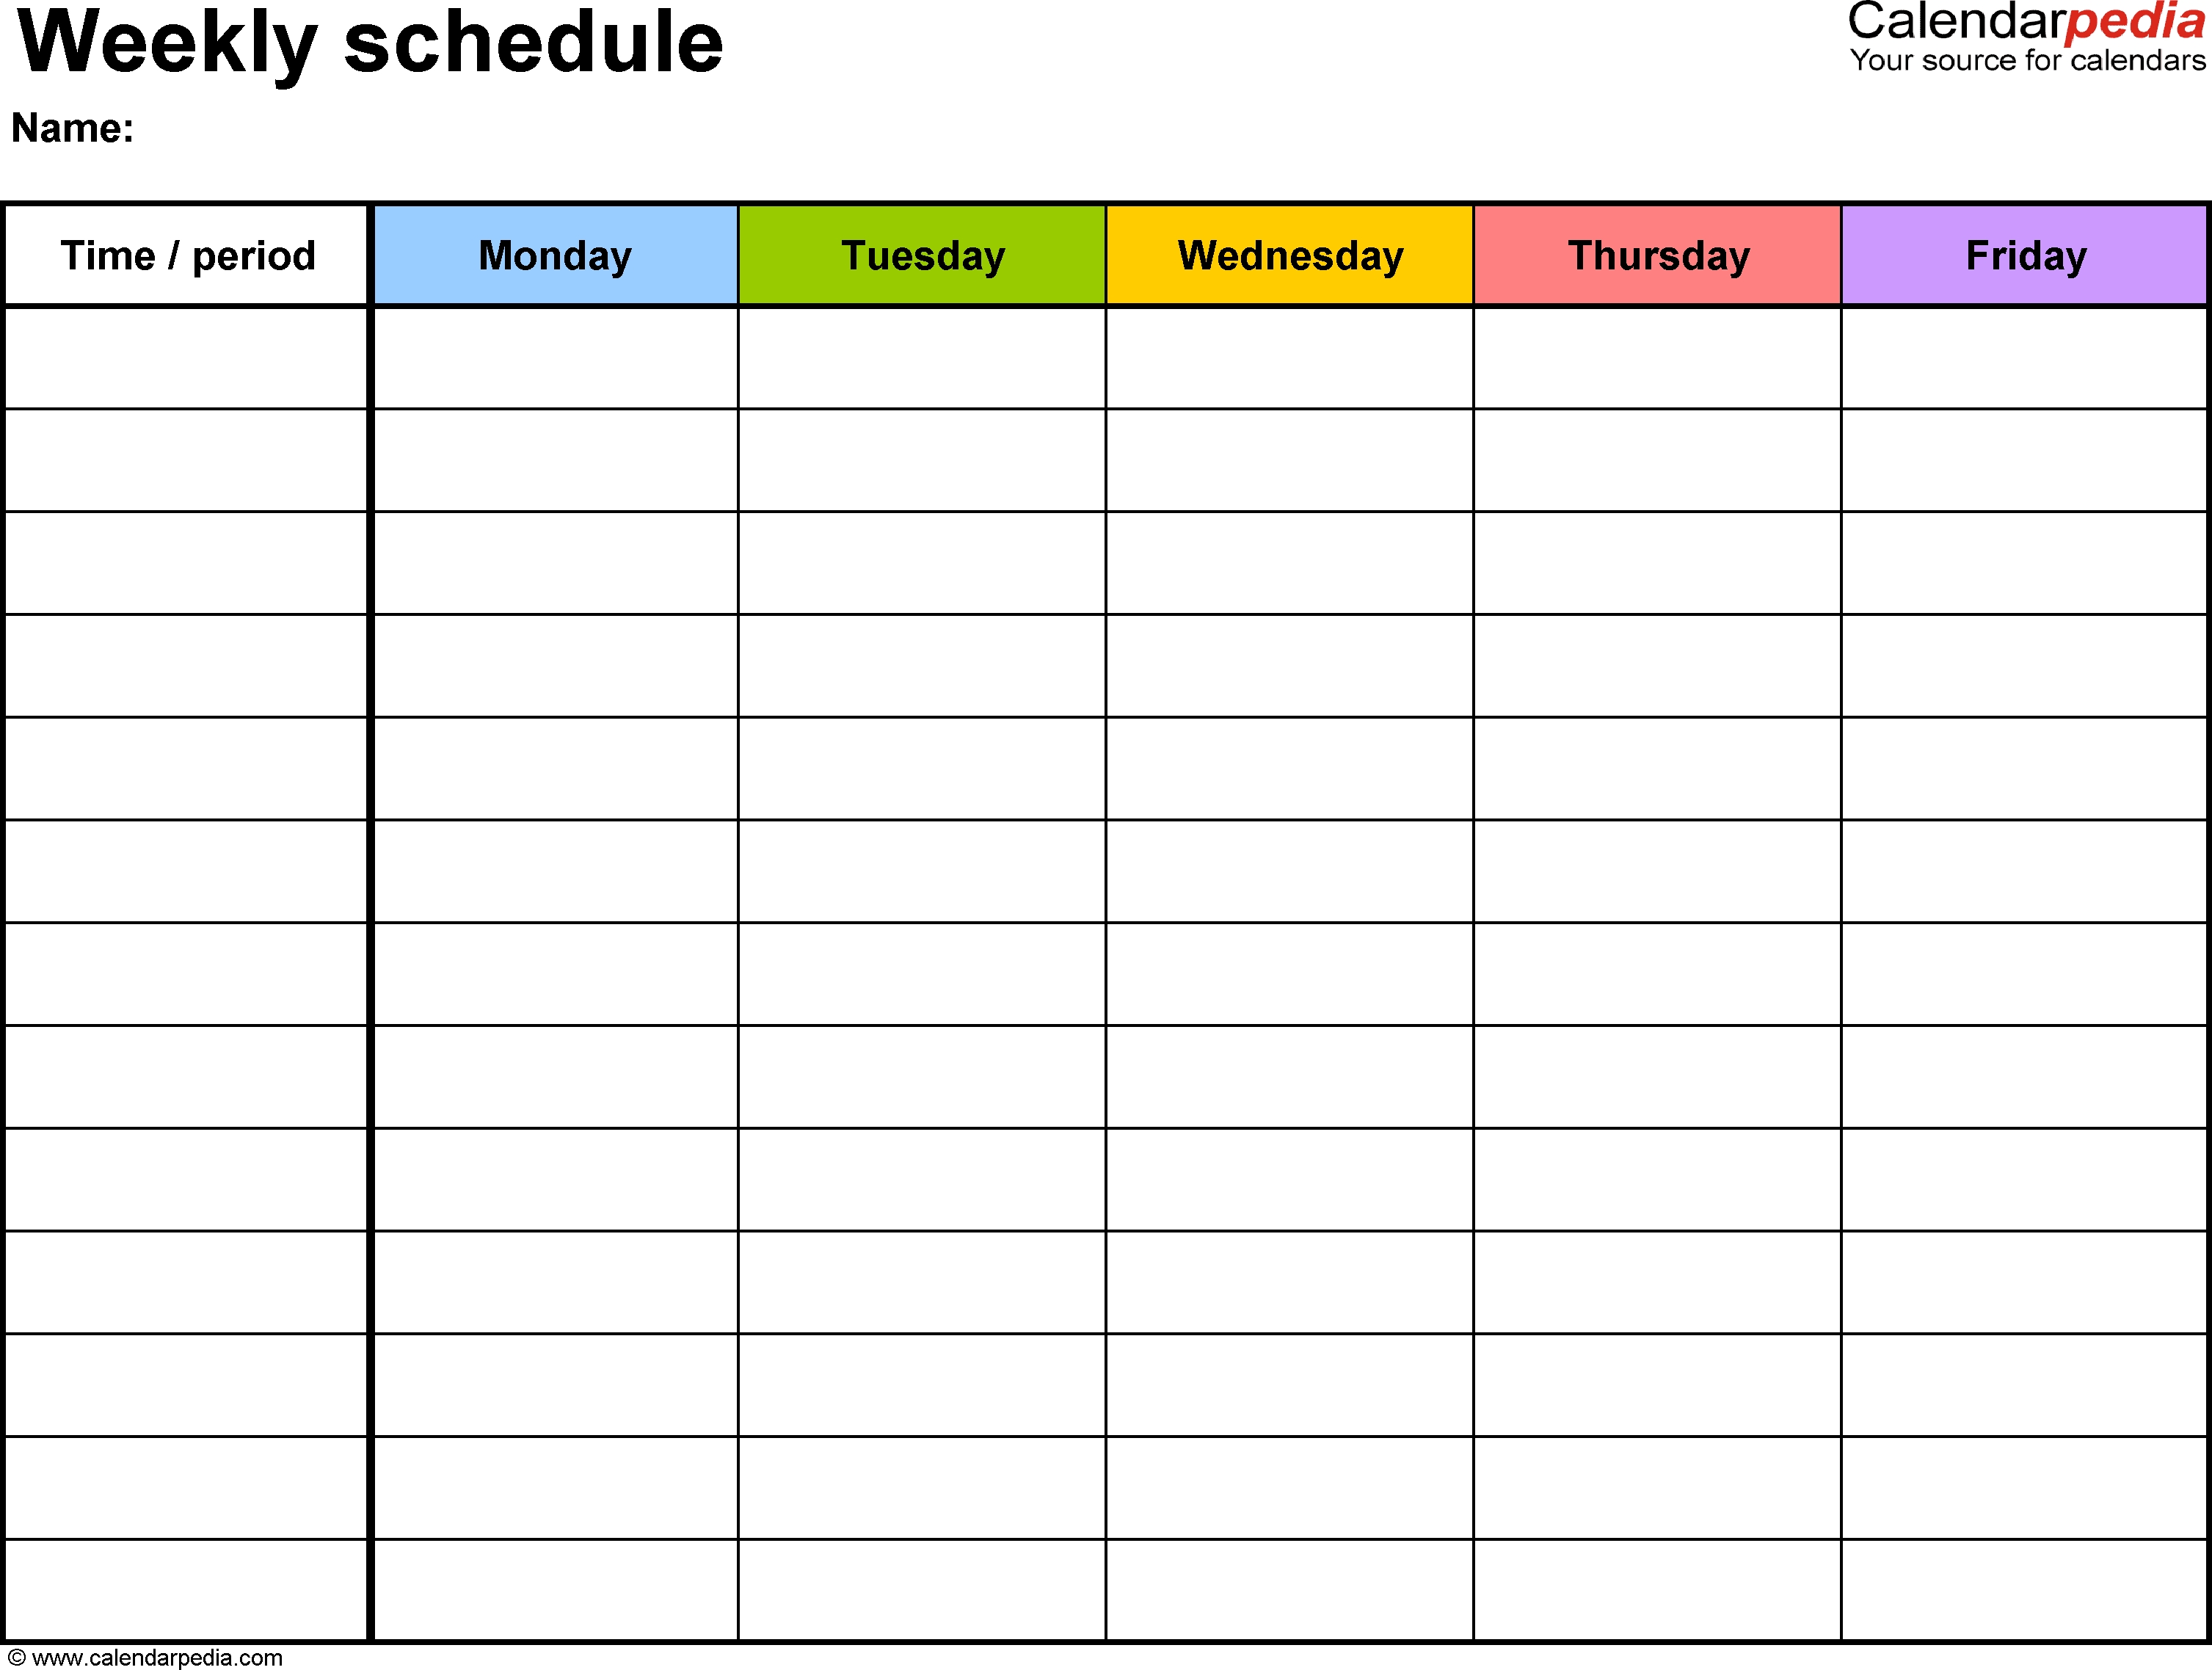 Free Weekly Schedule Templates For Pdf - 18 Templates within 7 Day Week Schedule Calendar Pdf